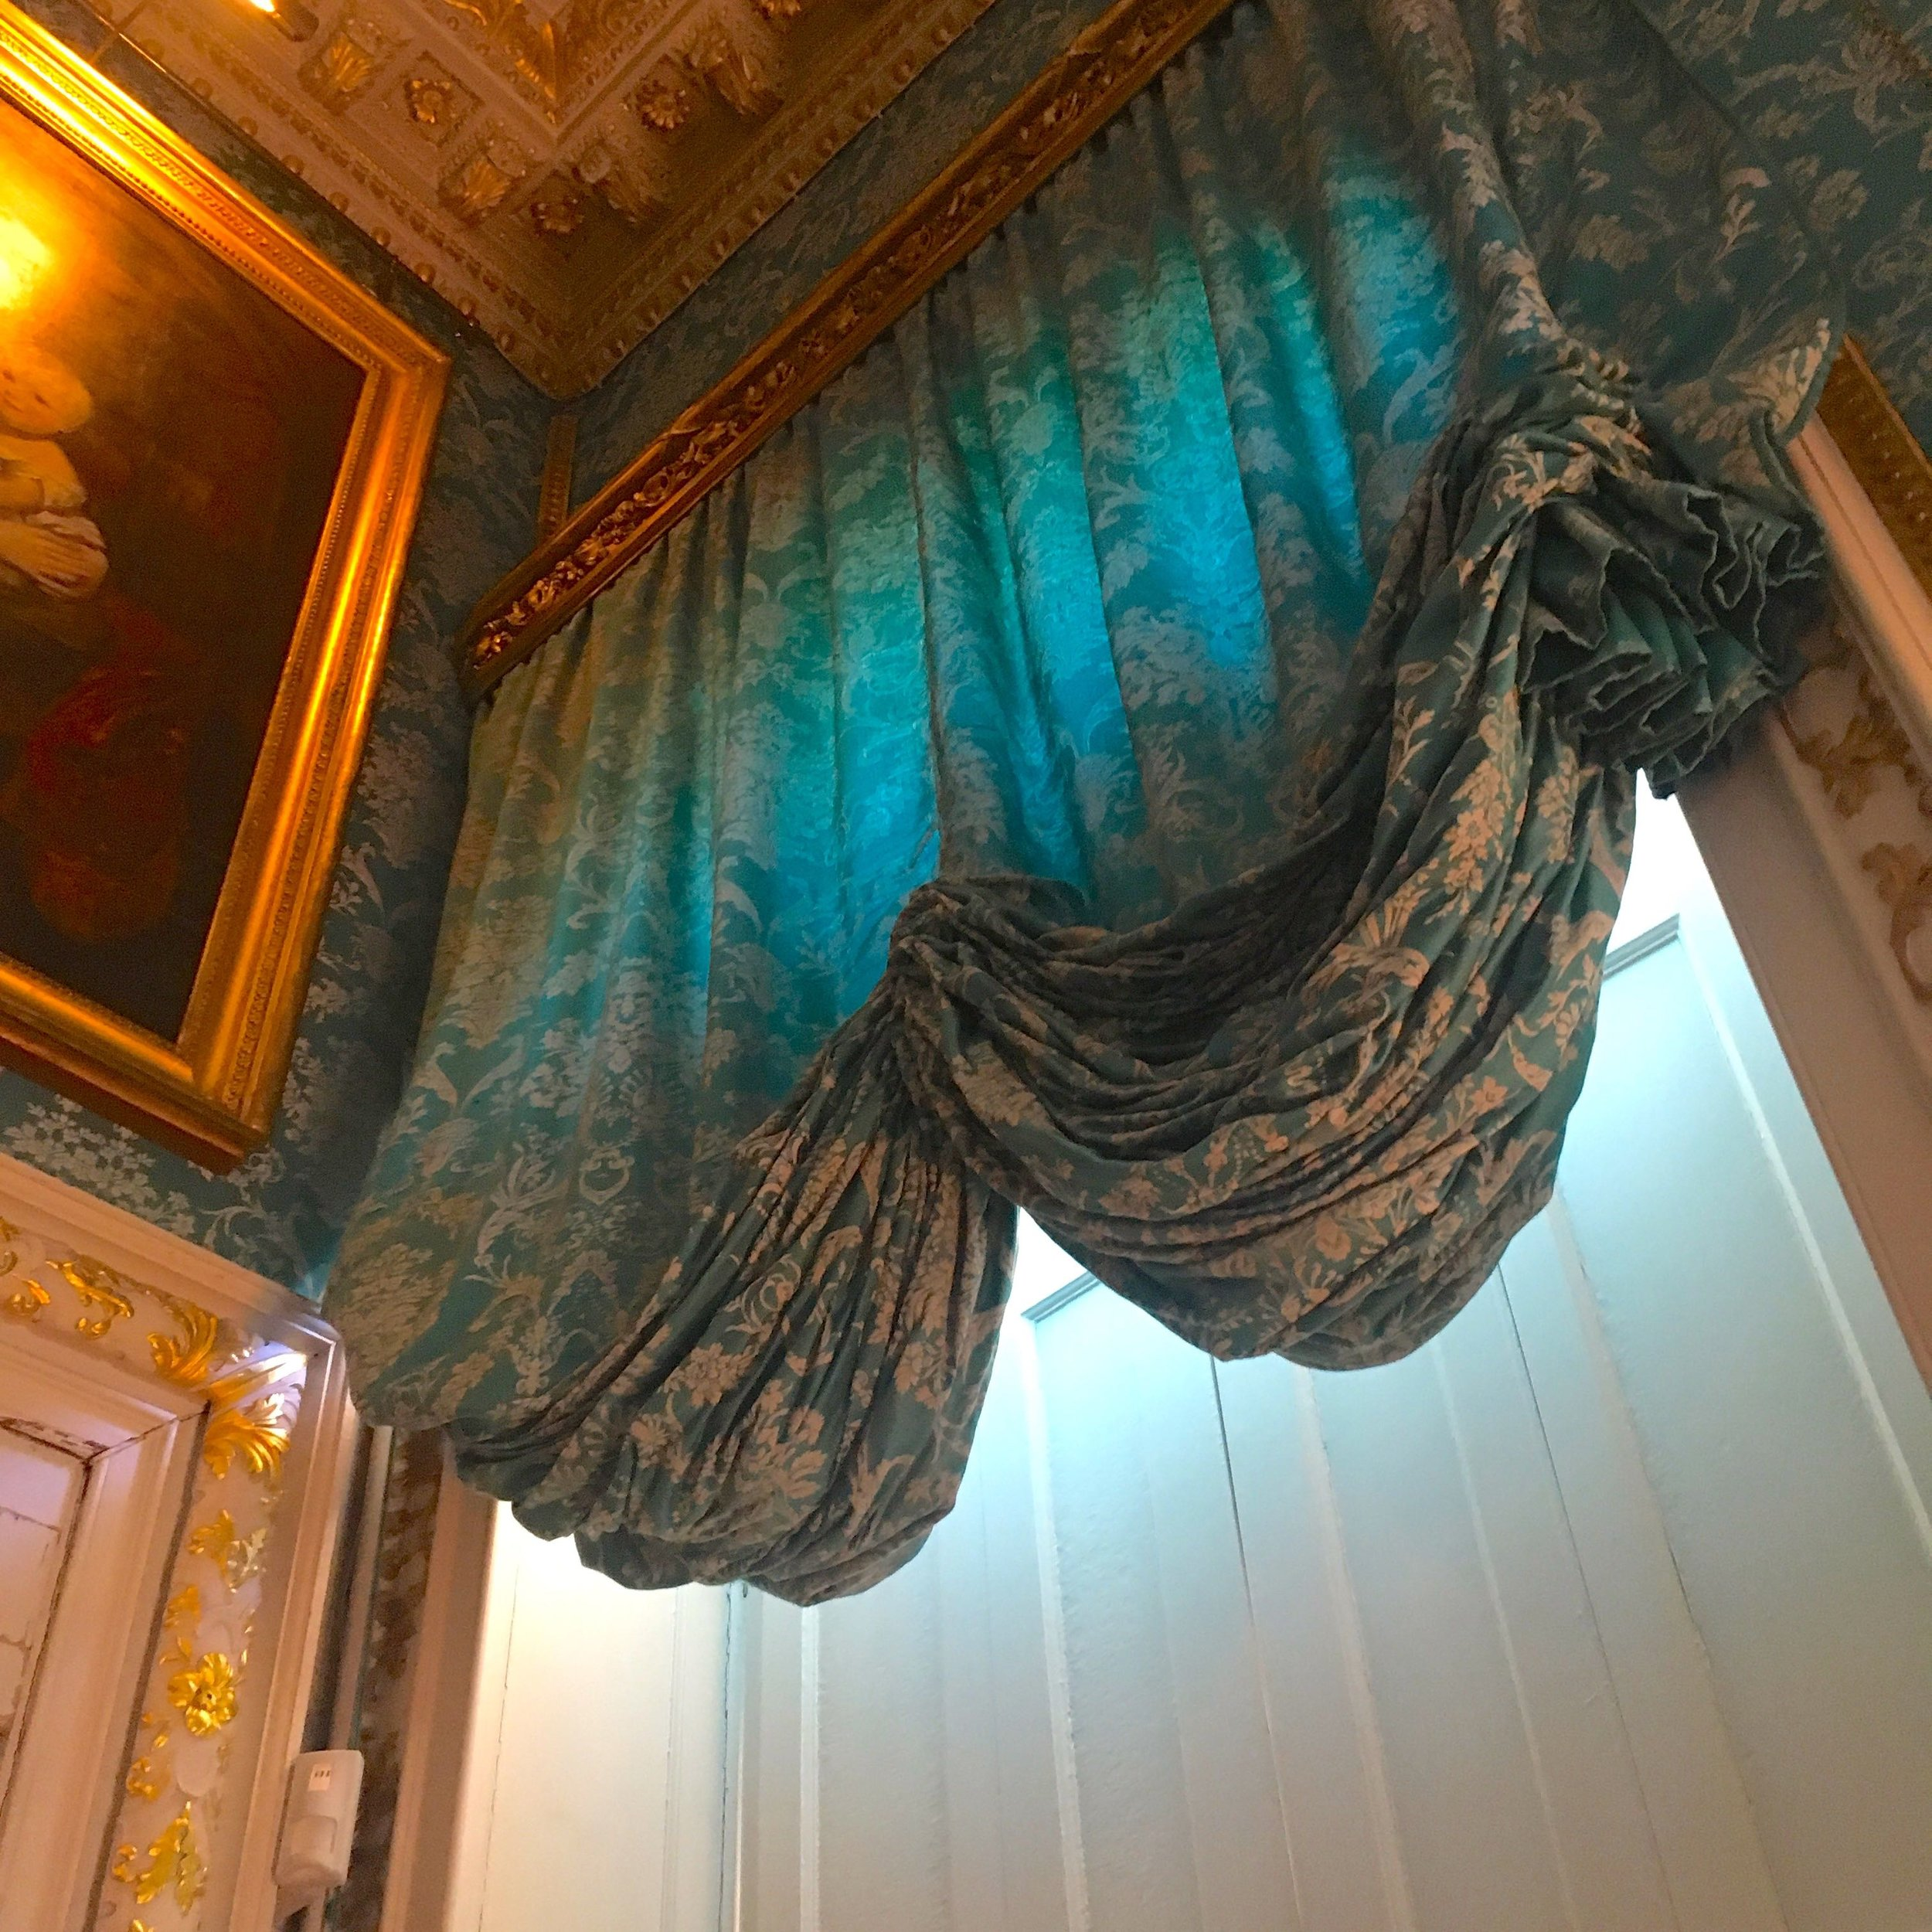 Turquoise festoon blinds at Castle Howard